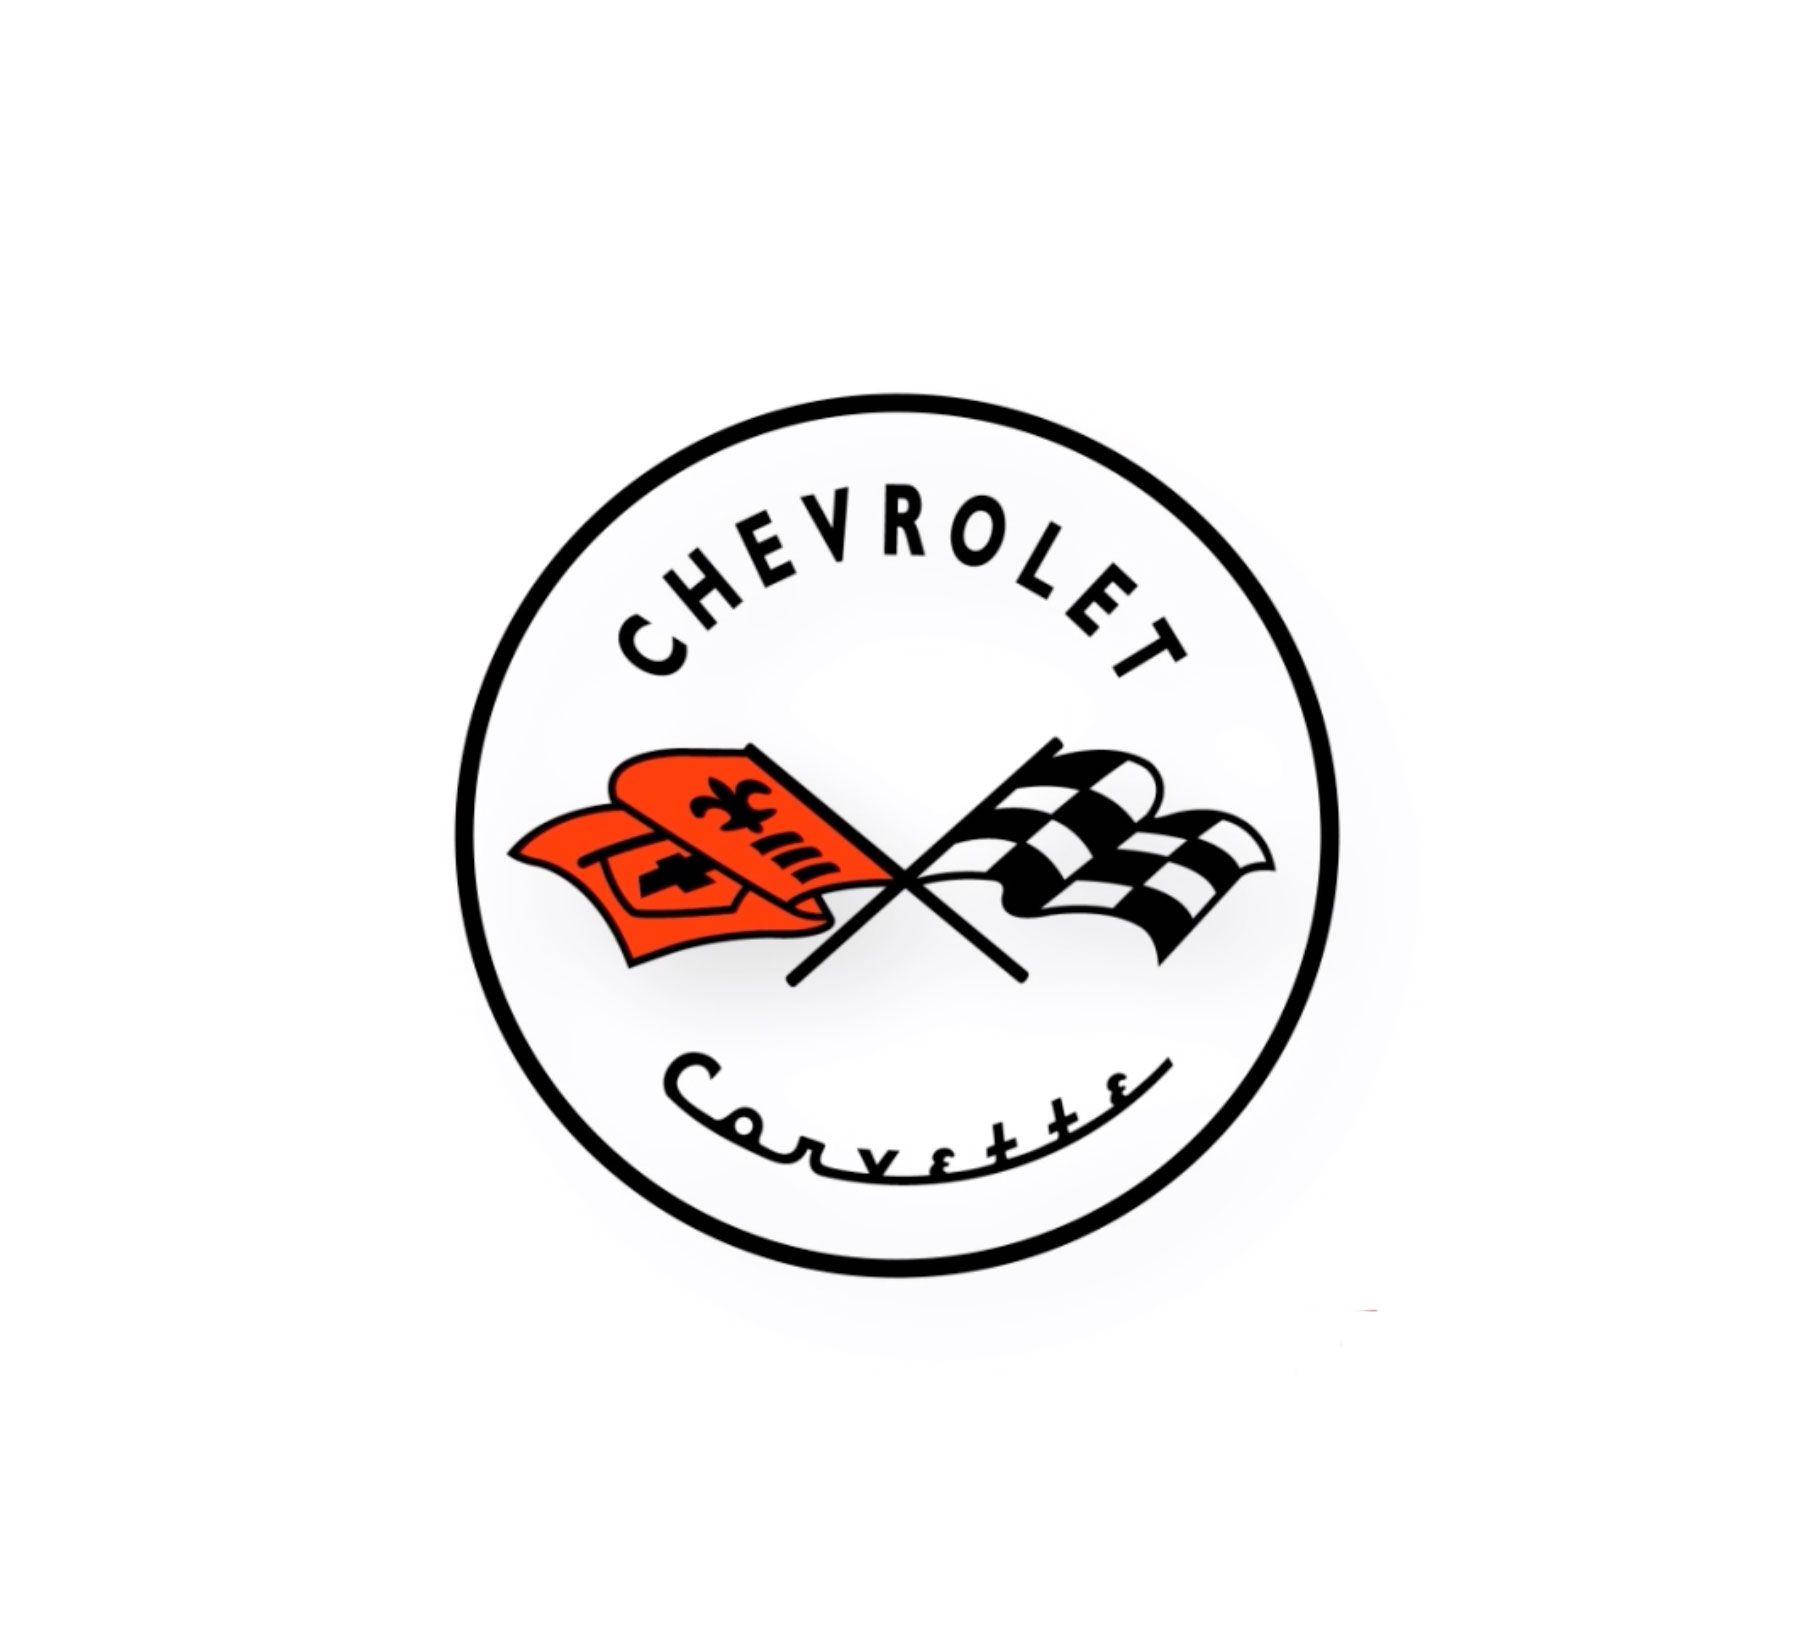 Chevrolet Related Emblems